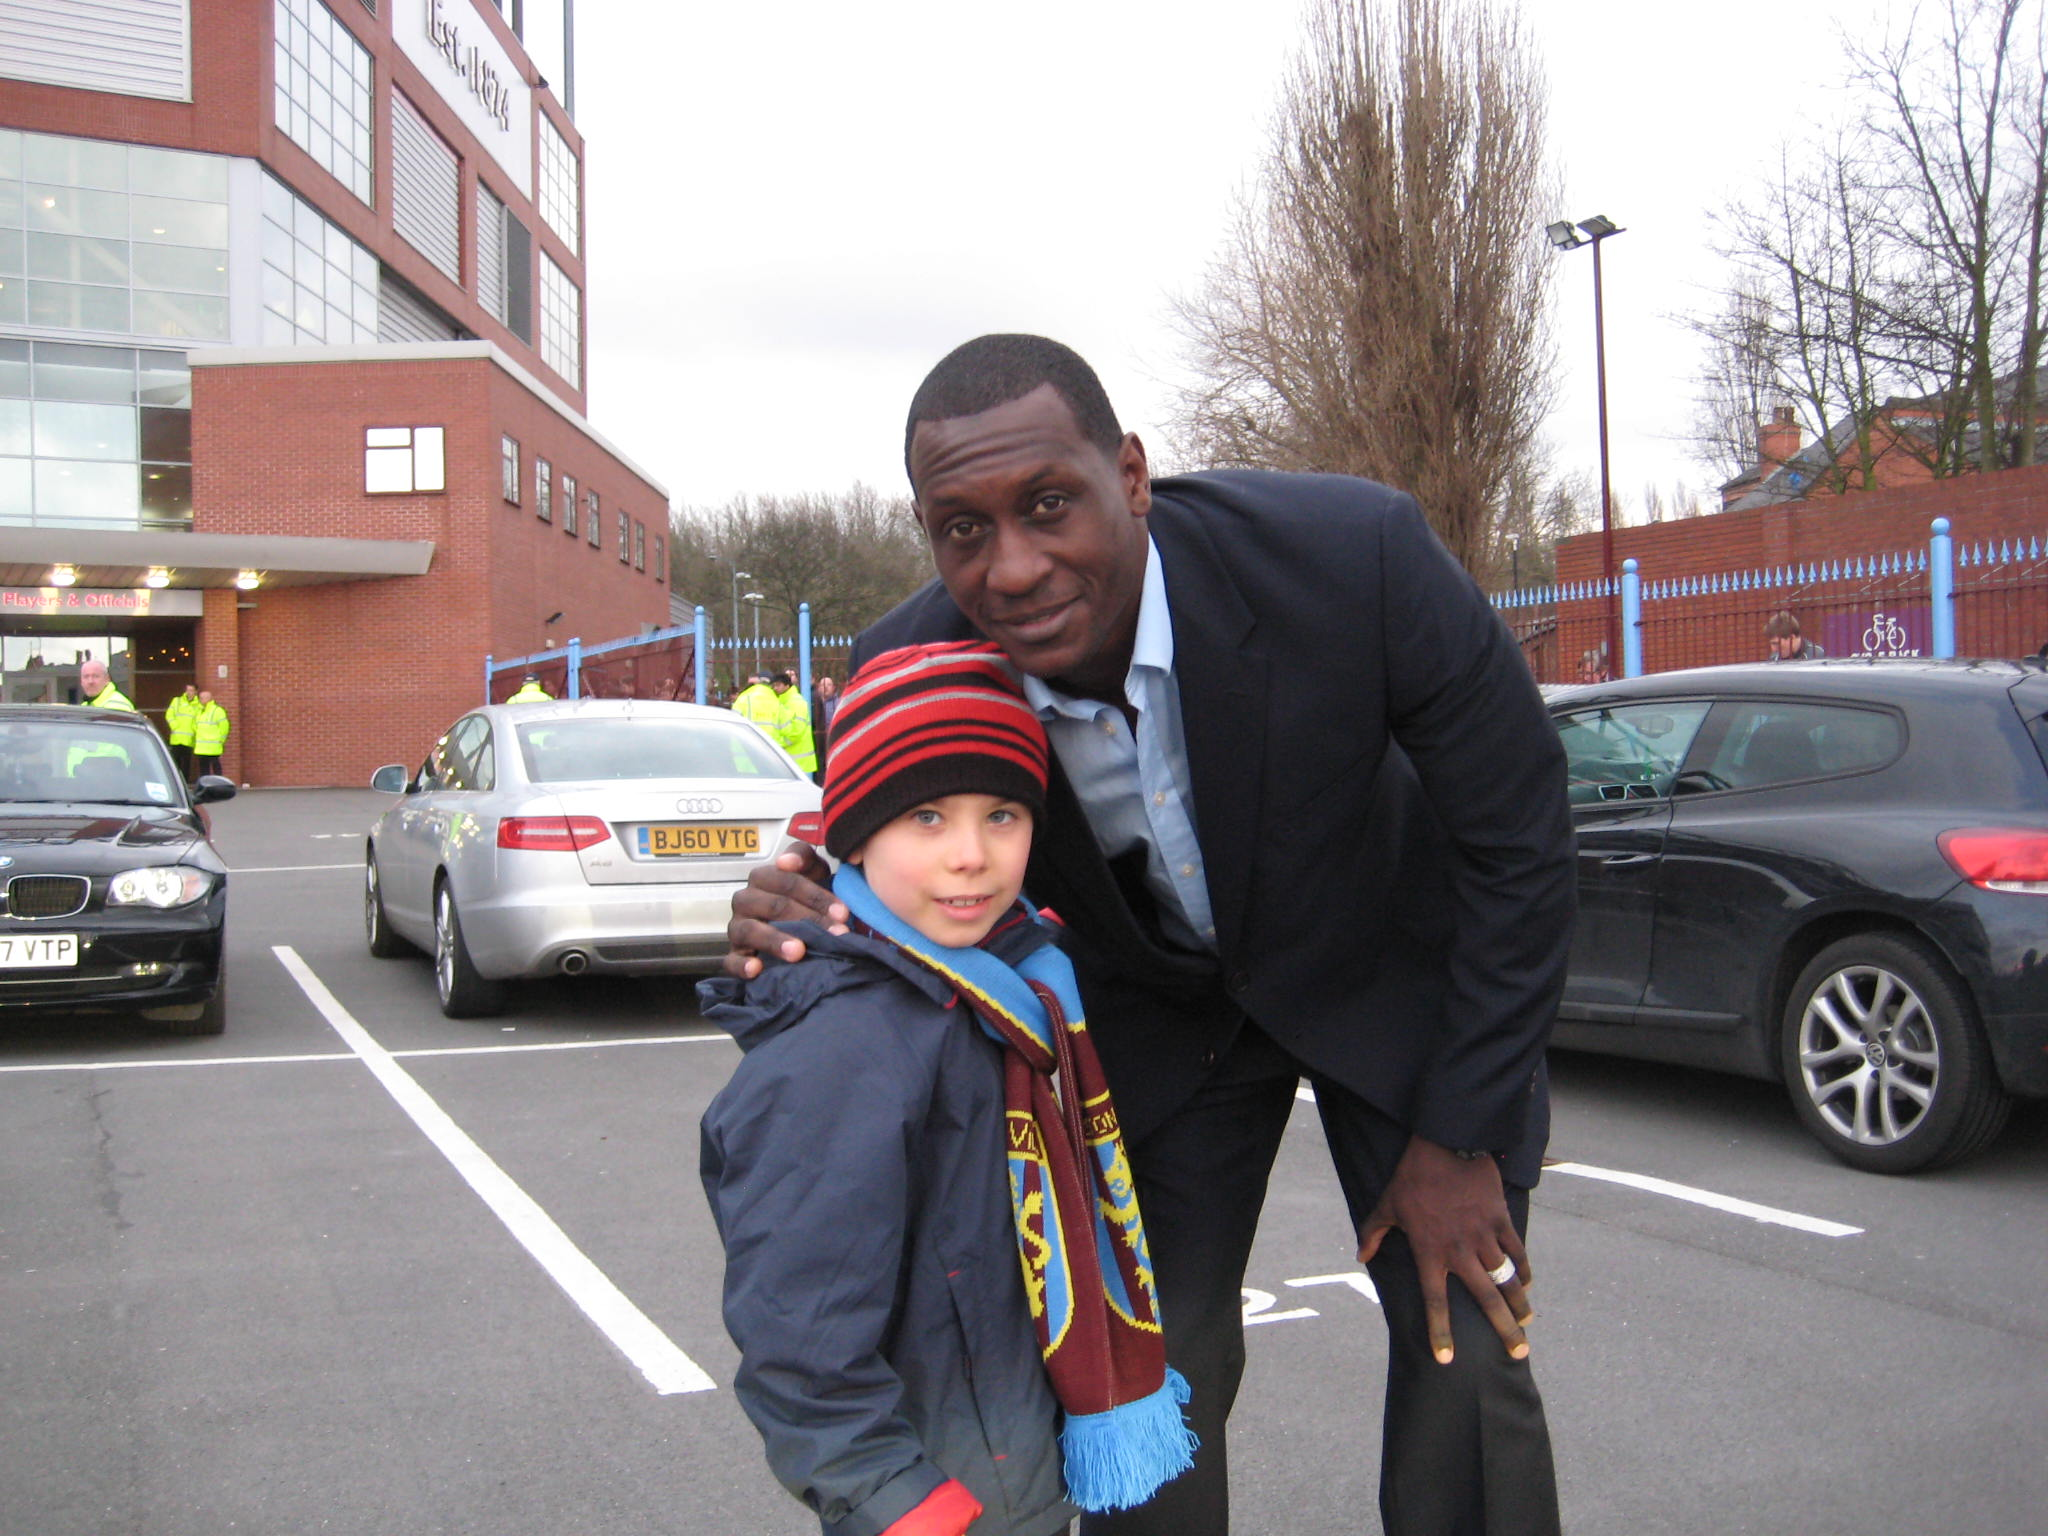 Jake gets a pat on the back from England star Emile Heskey